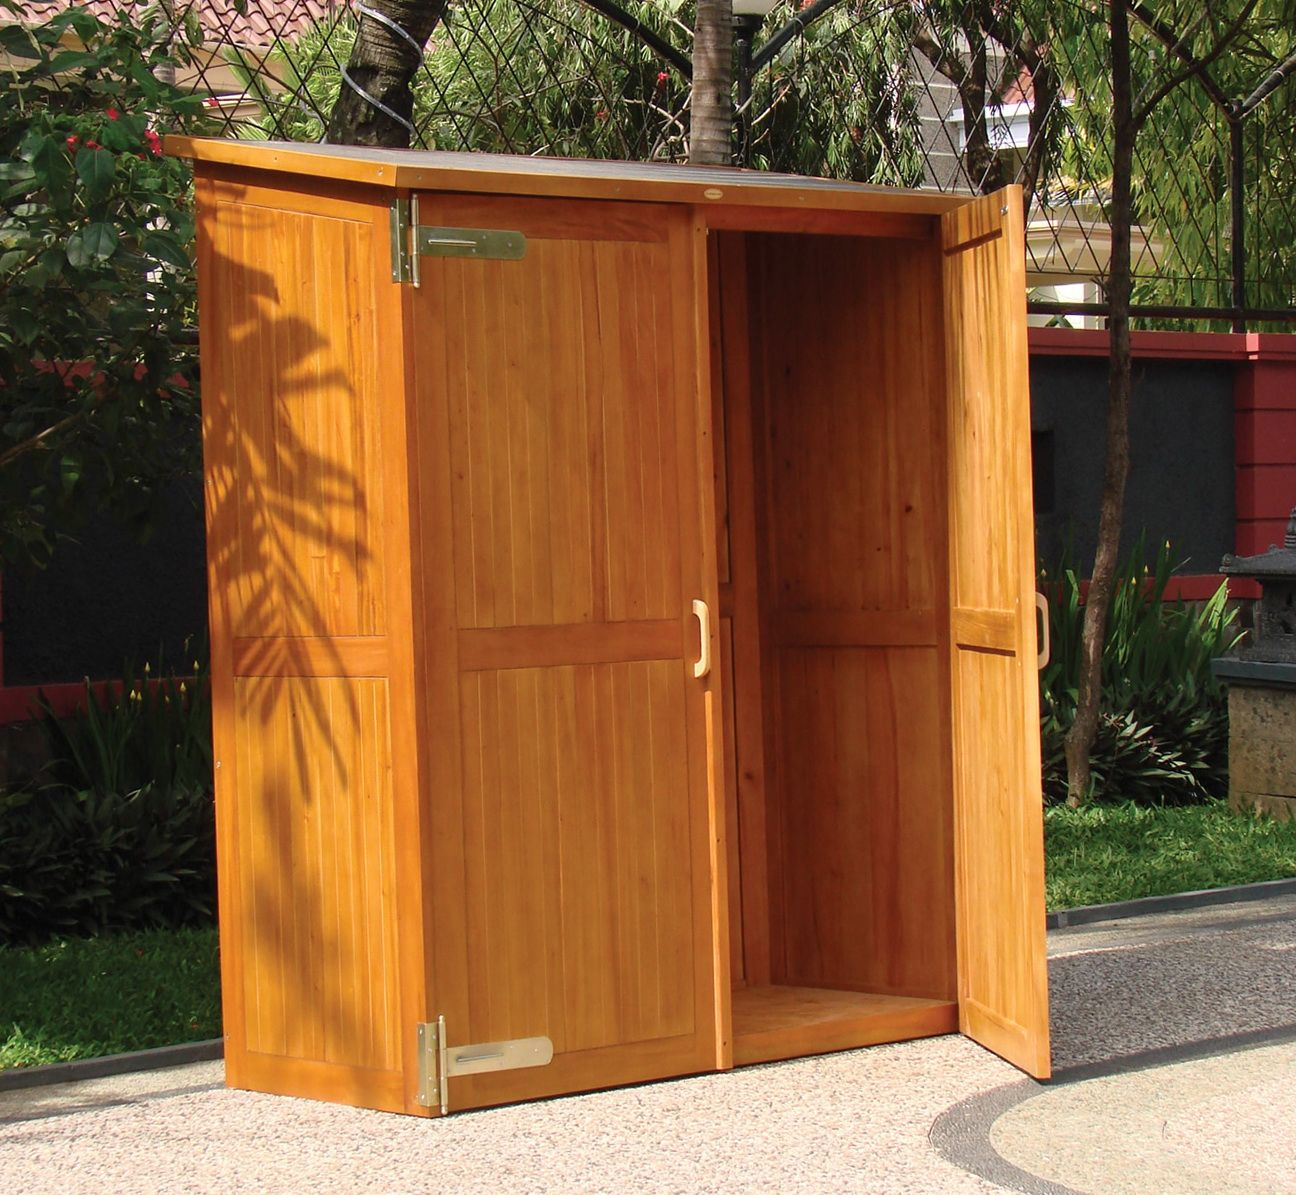 Wooden Outdoor Storage Cabinets With Doors Outside Storage intended for size 1296 X 1195